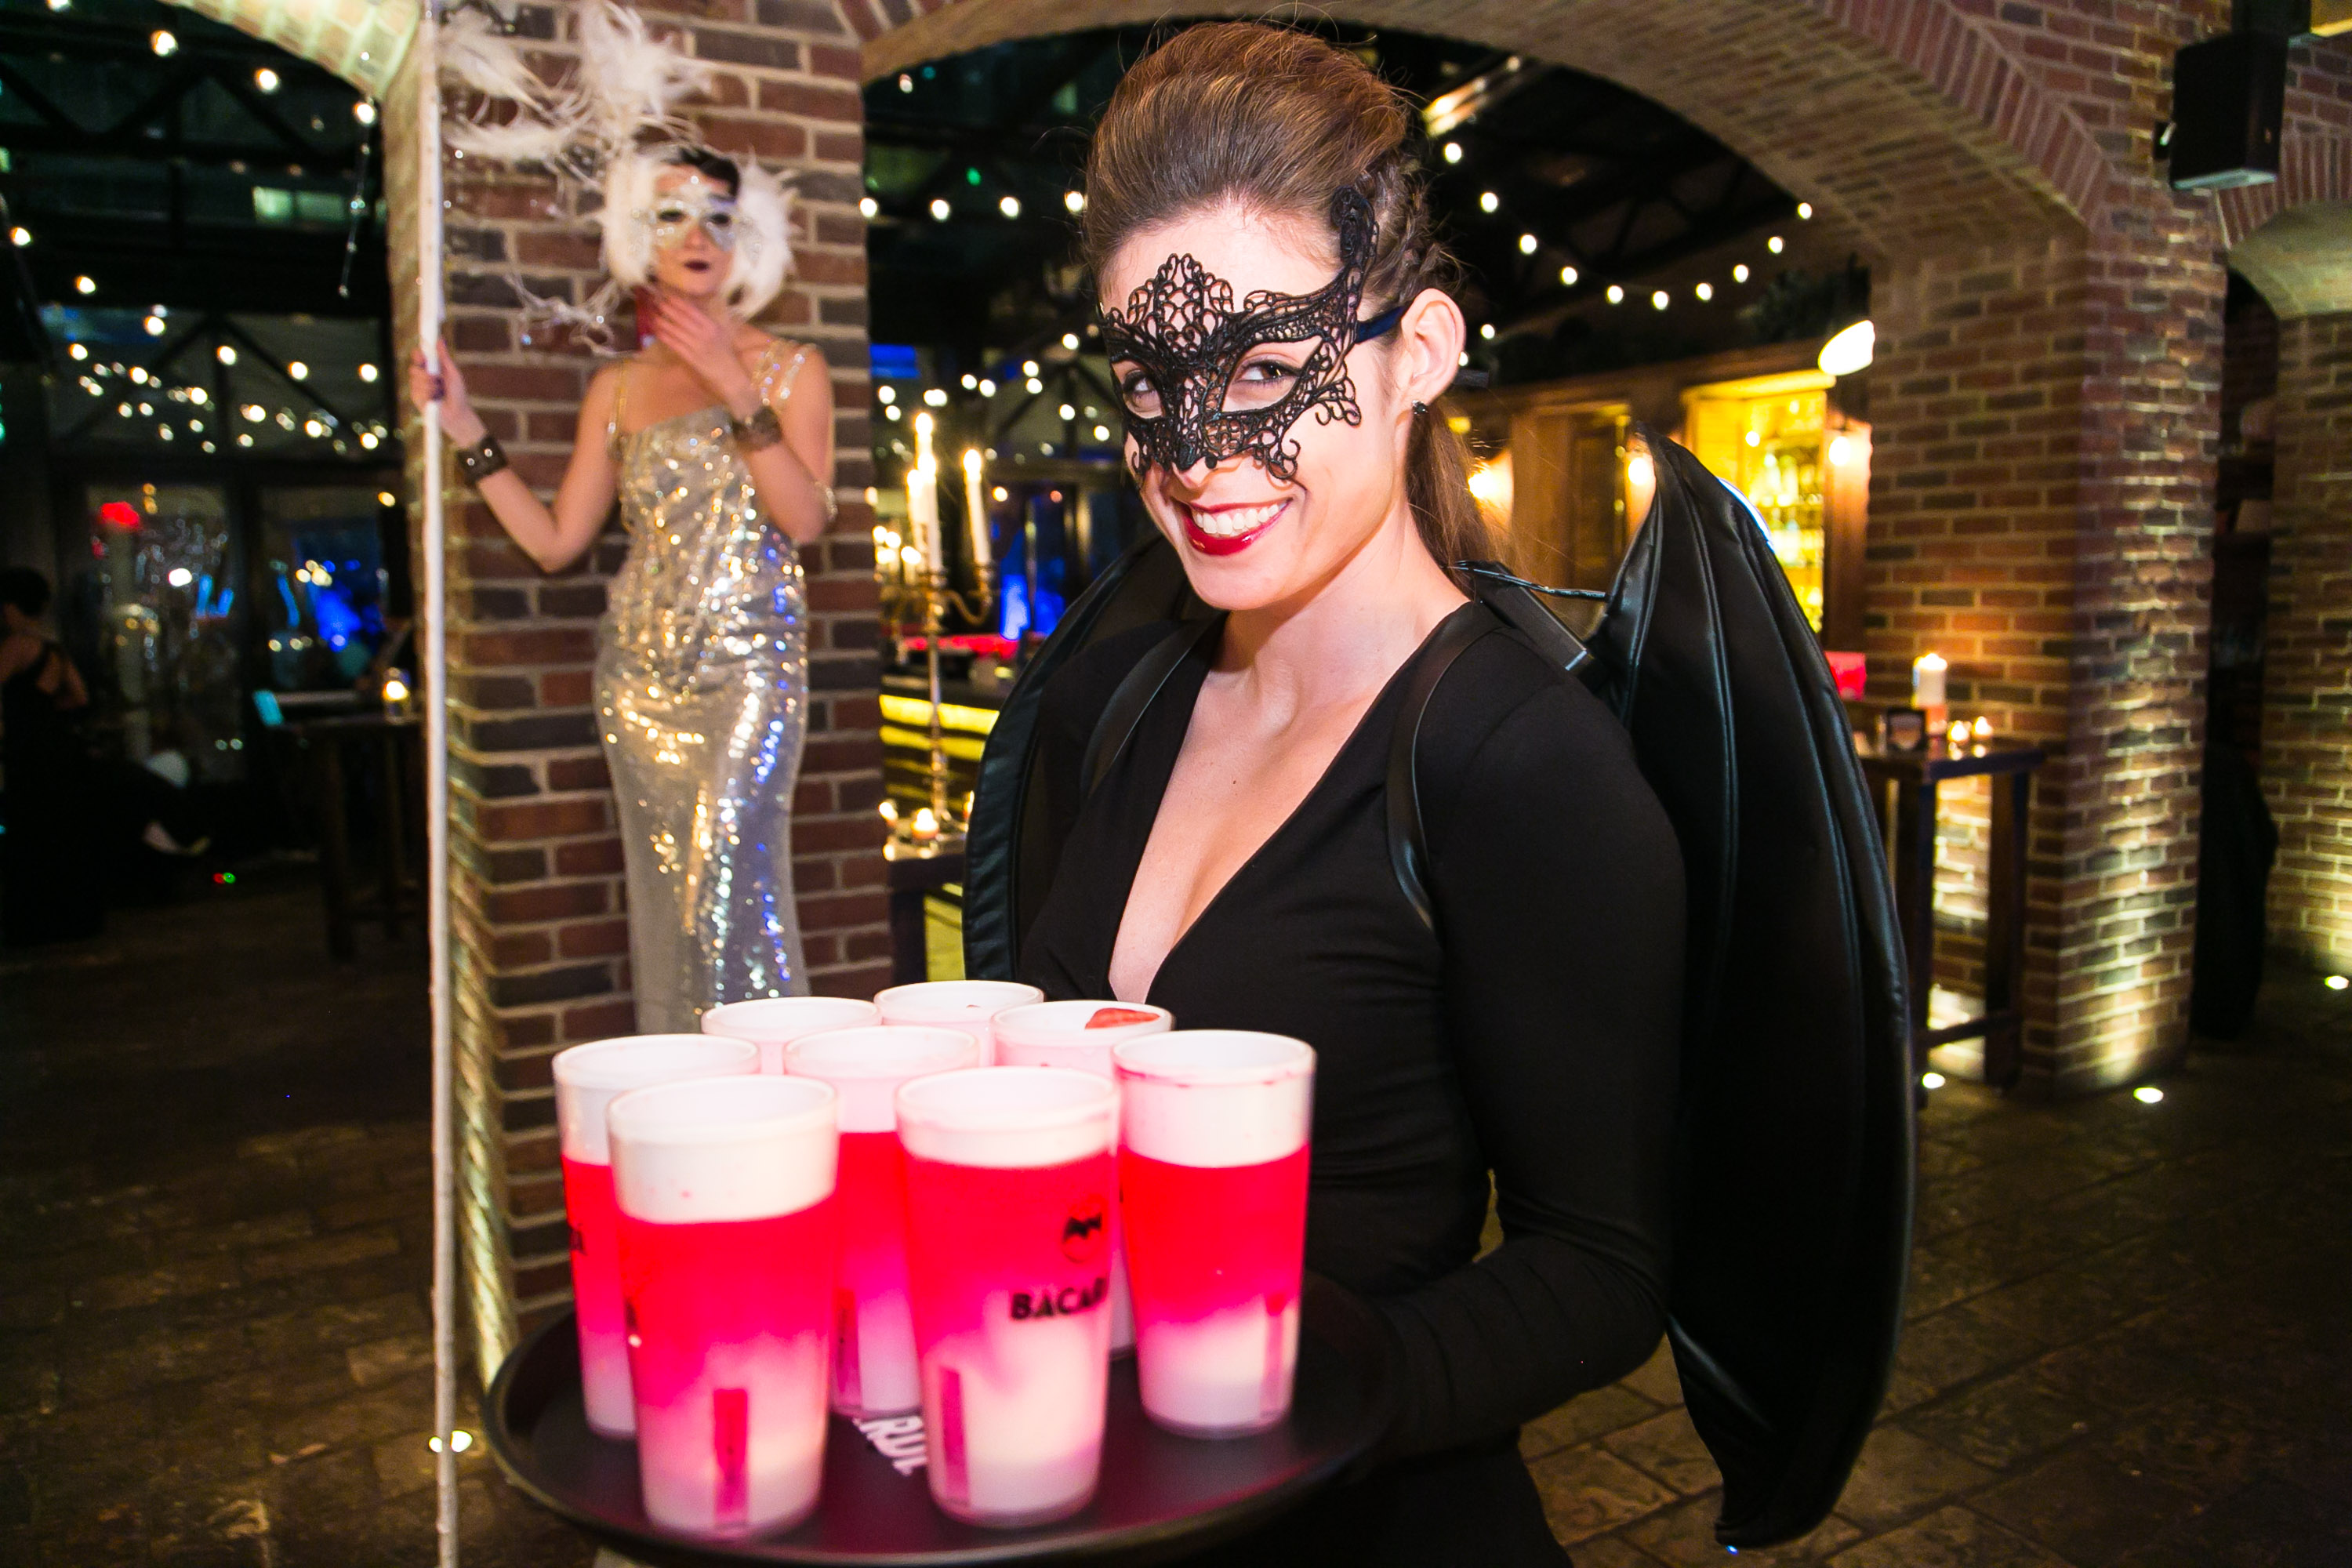 No Plans For Halloween? Here Are 10 Ways To Celebrate Halloween In NYC